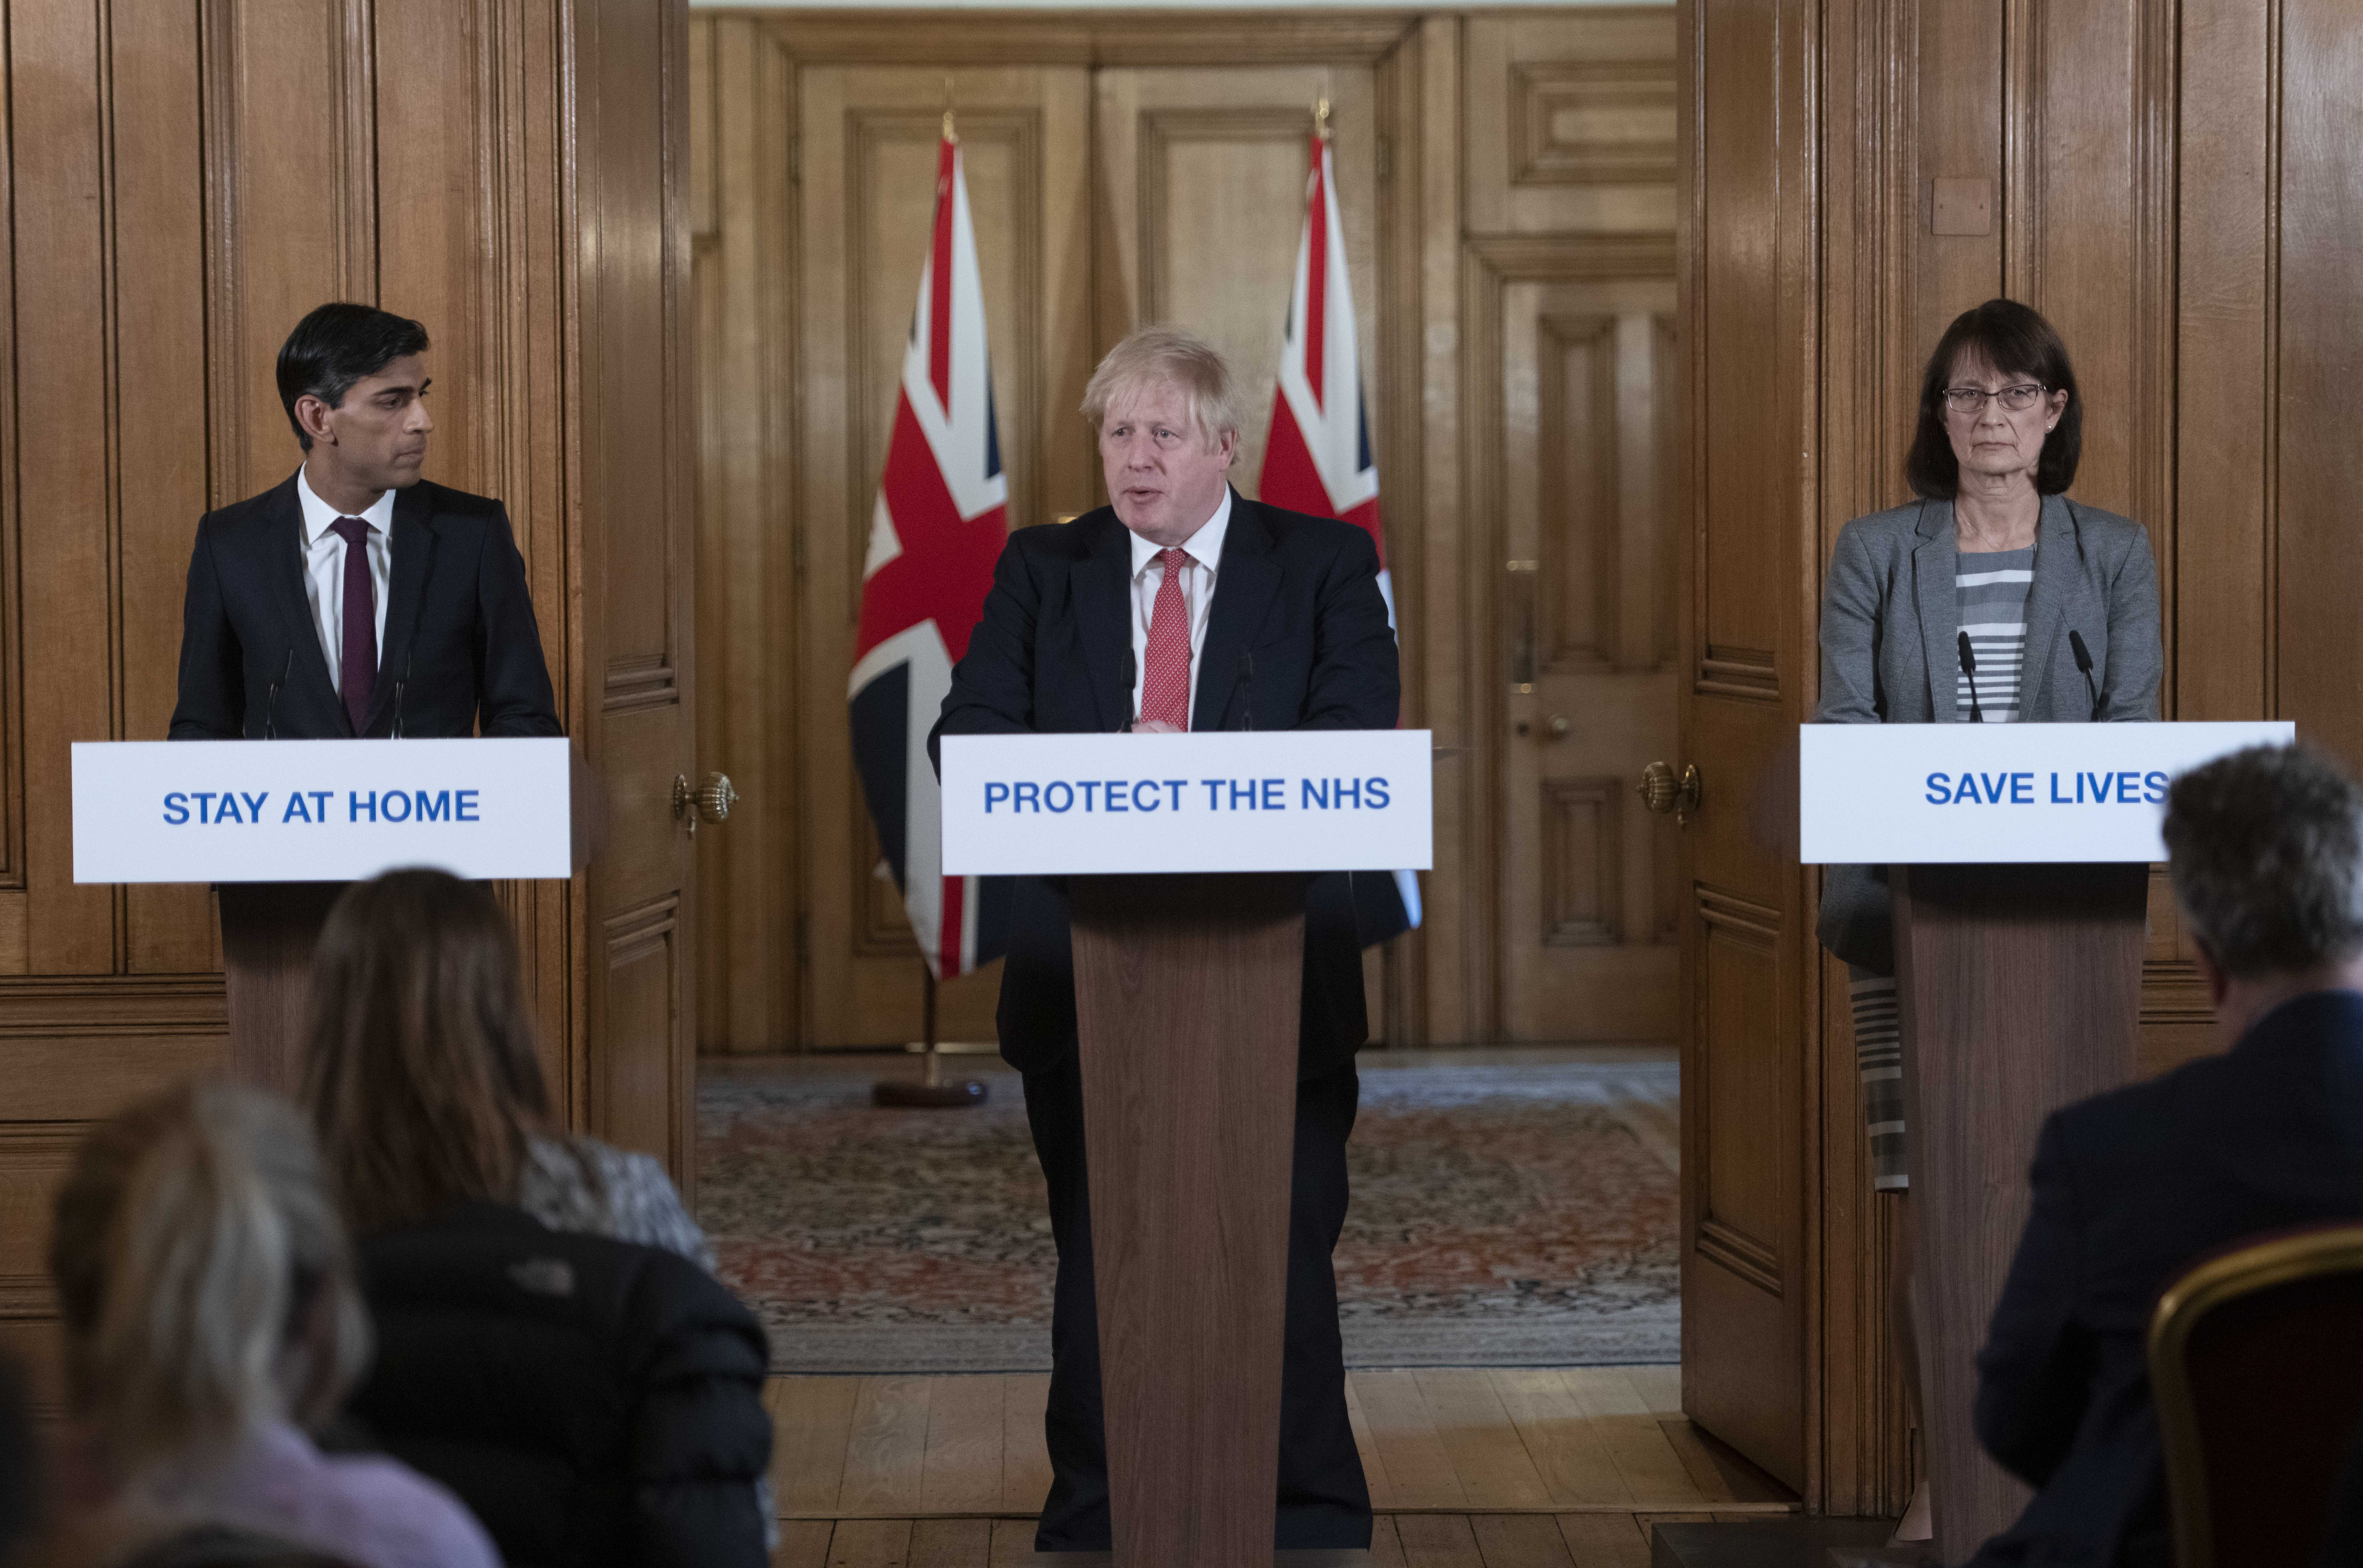 File photo dated 20/03/2020 of Prime Minister Boris Johnson (centre), Chancellor Rishi Sunak (left) and Dr Jenny Harries (right) speaking at a media briefing in Downing Street, London, on coronavirus (COVID-19). The Prime Minister has said he has tested positive for coronavirus.